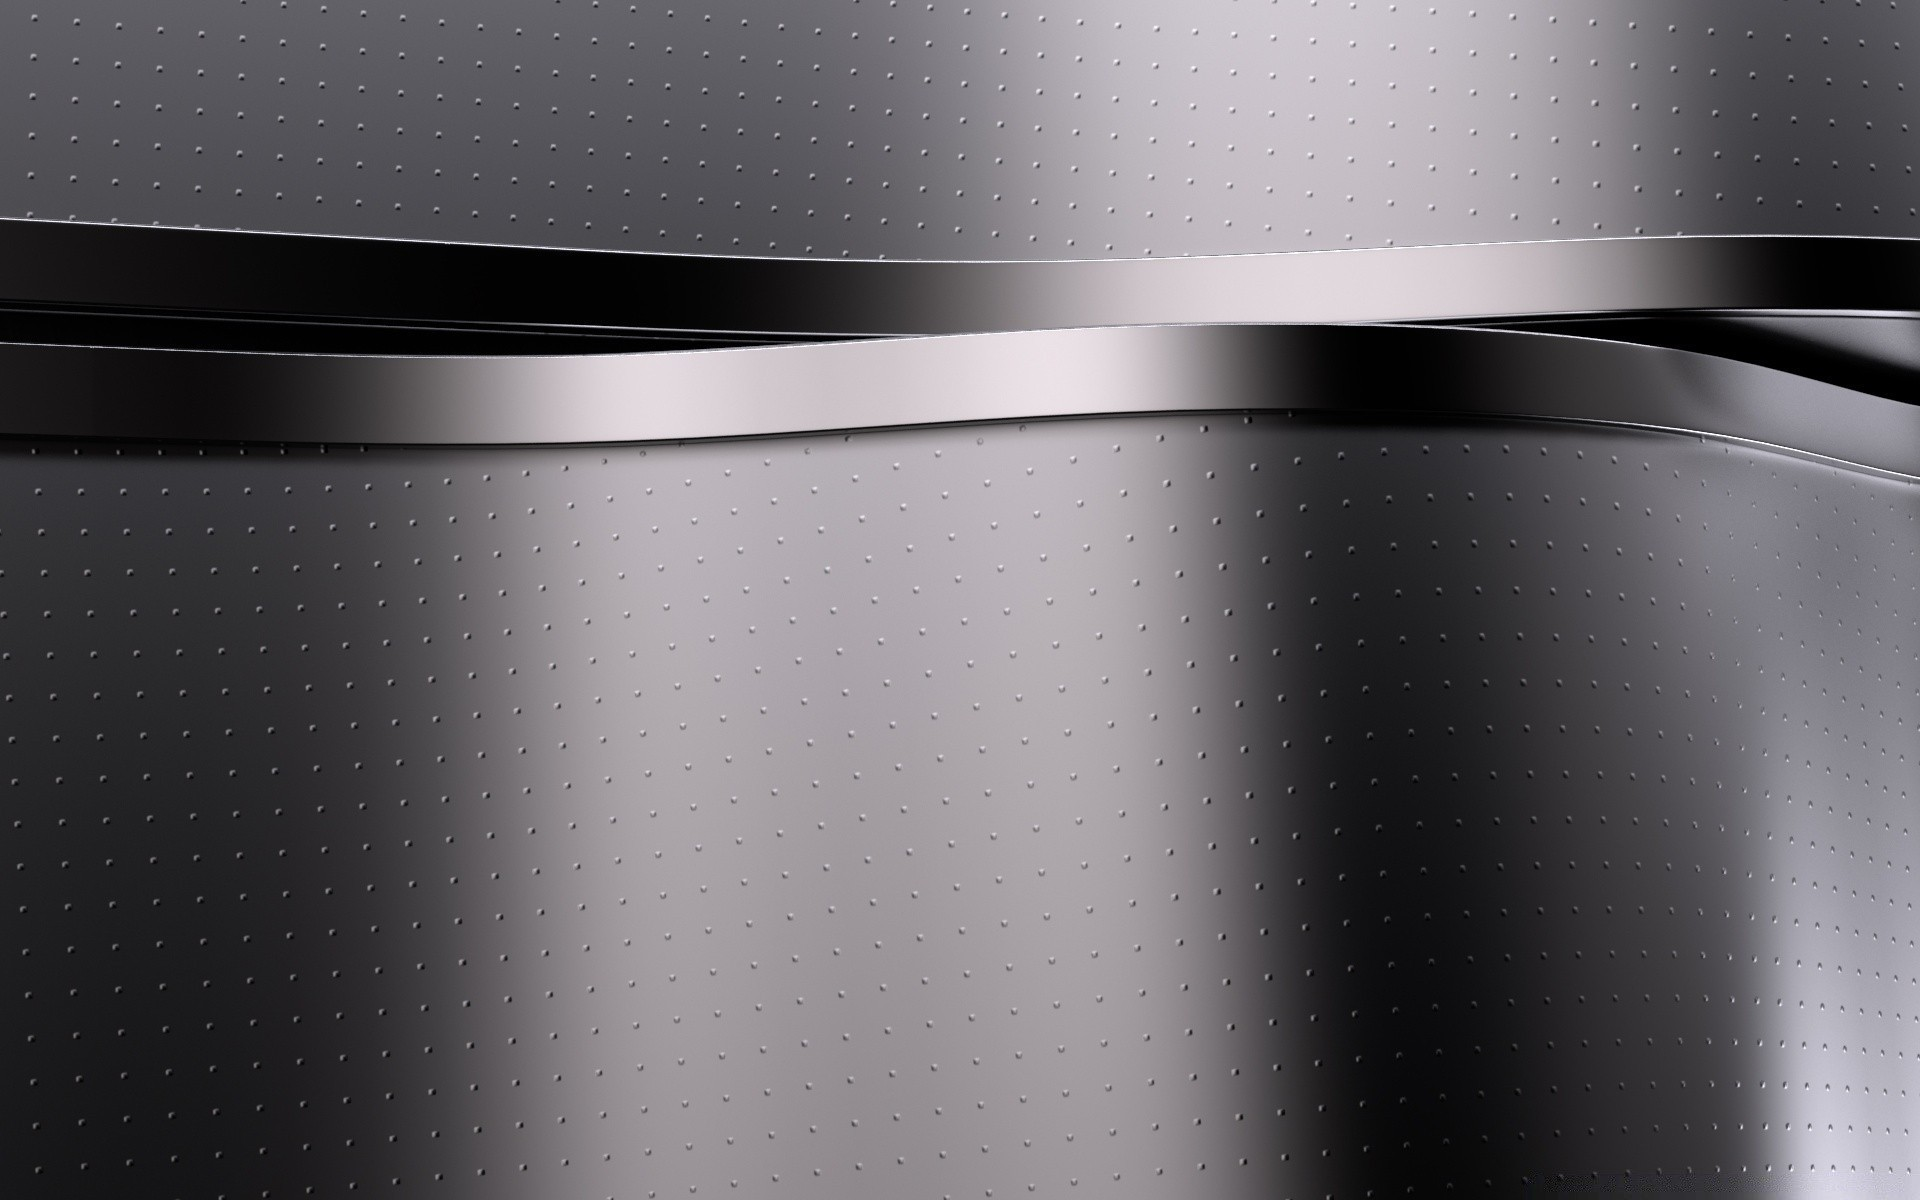 Stainless Steel Wallpaper 37 Images